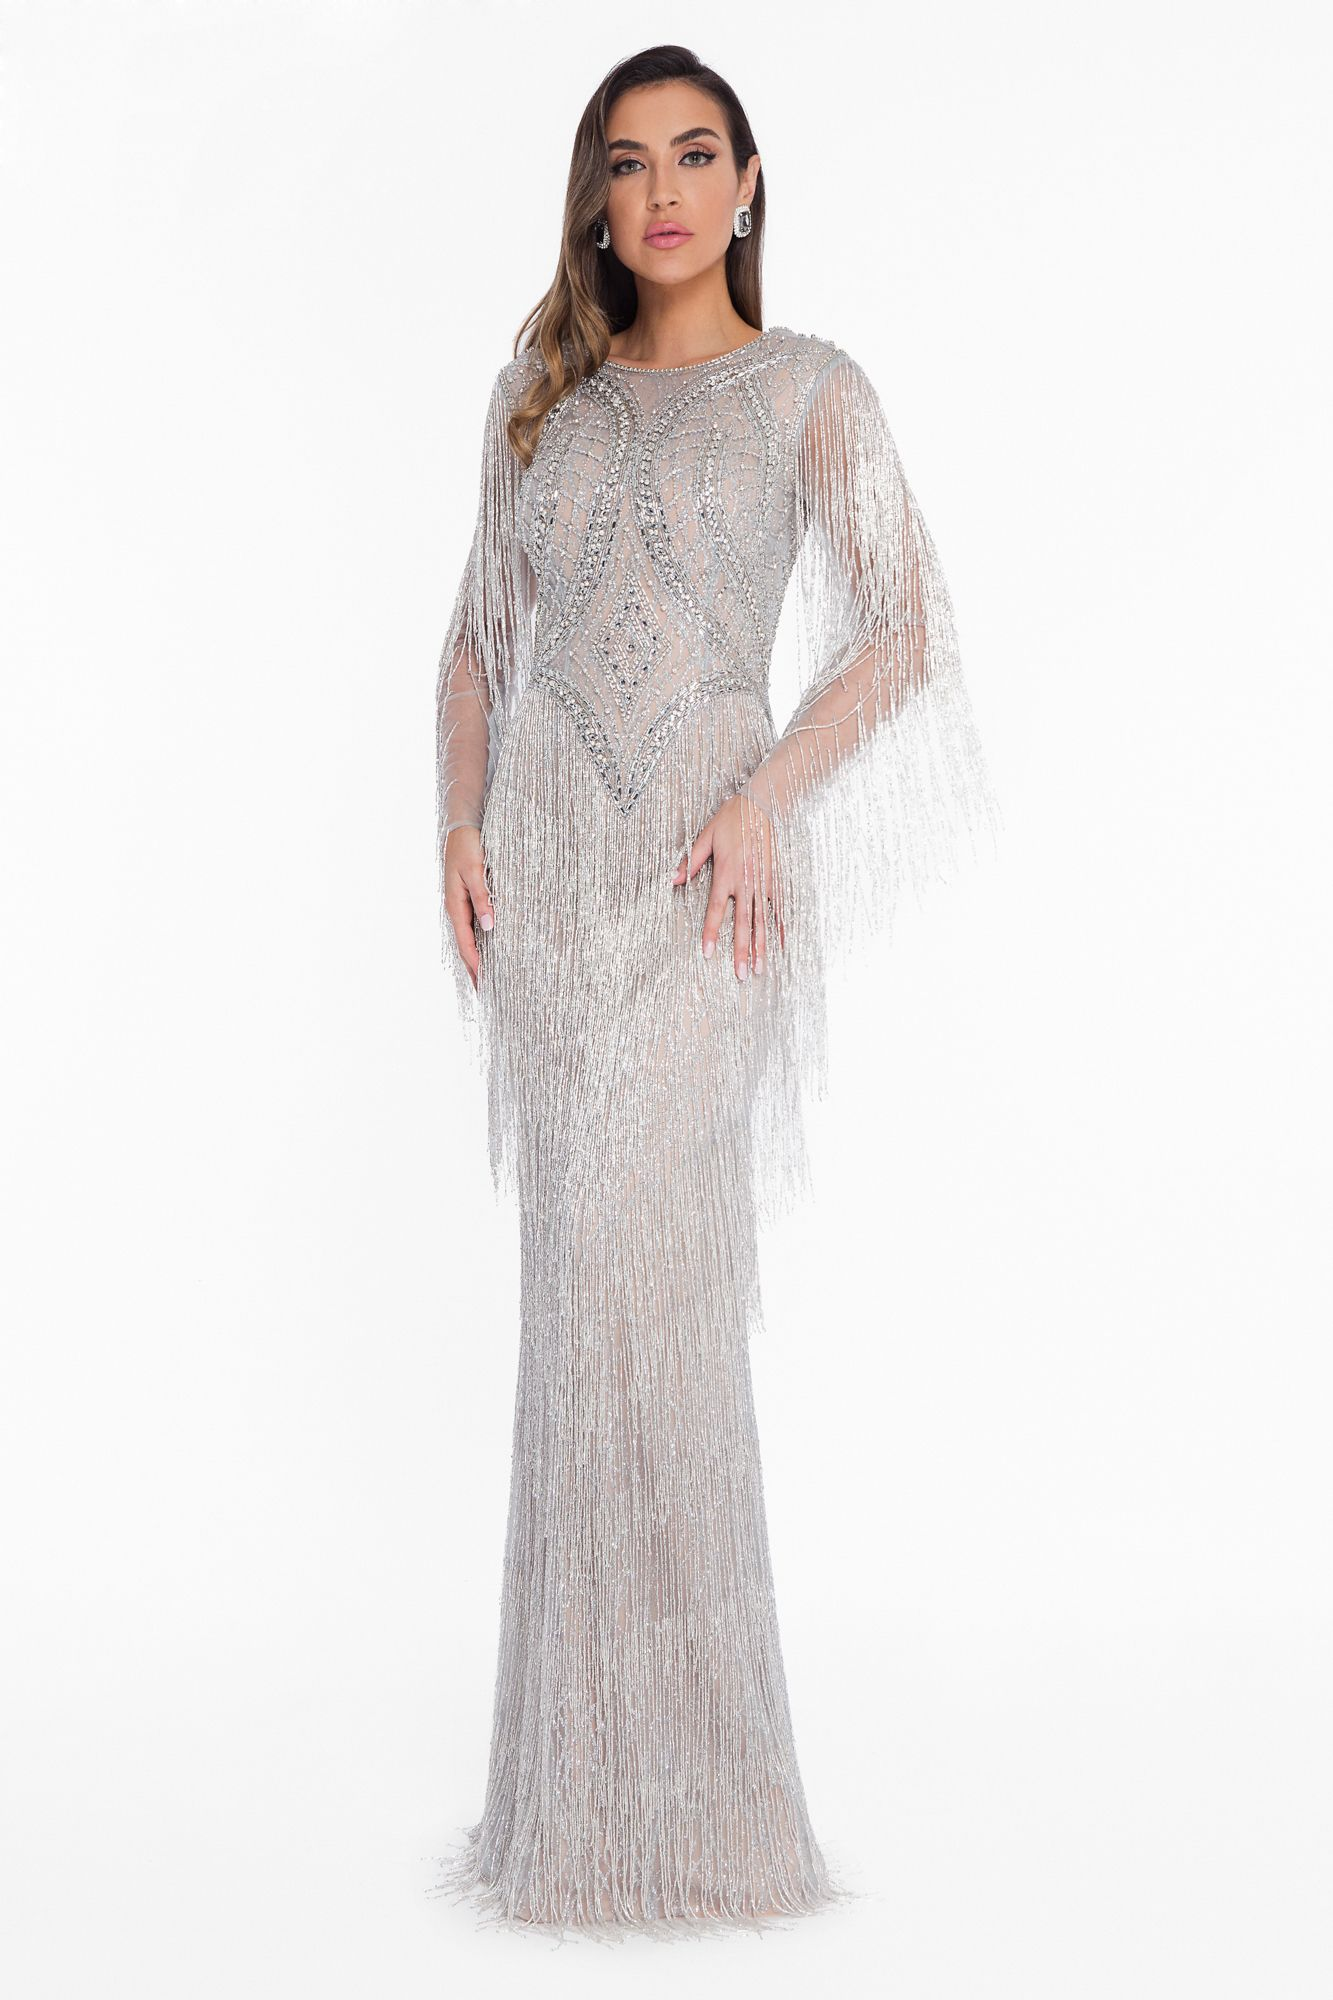 aaabf88da895 Dramatic and dazzling the Dripping Crystal Fringe Long Sleeve Evening Gown  by Terani Couture is the